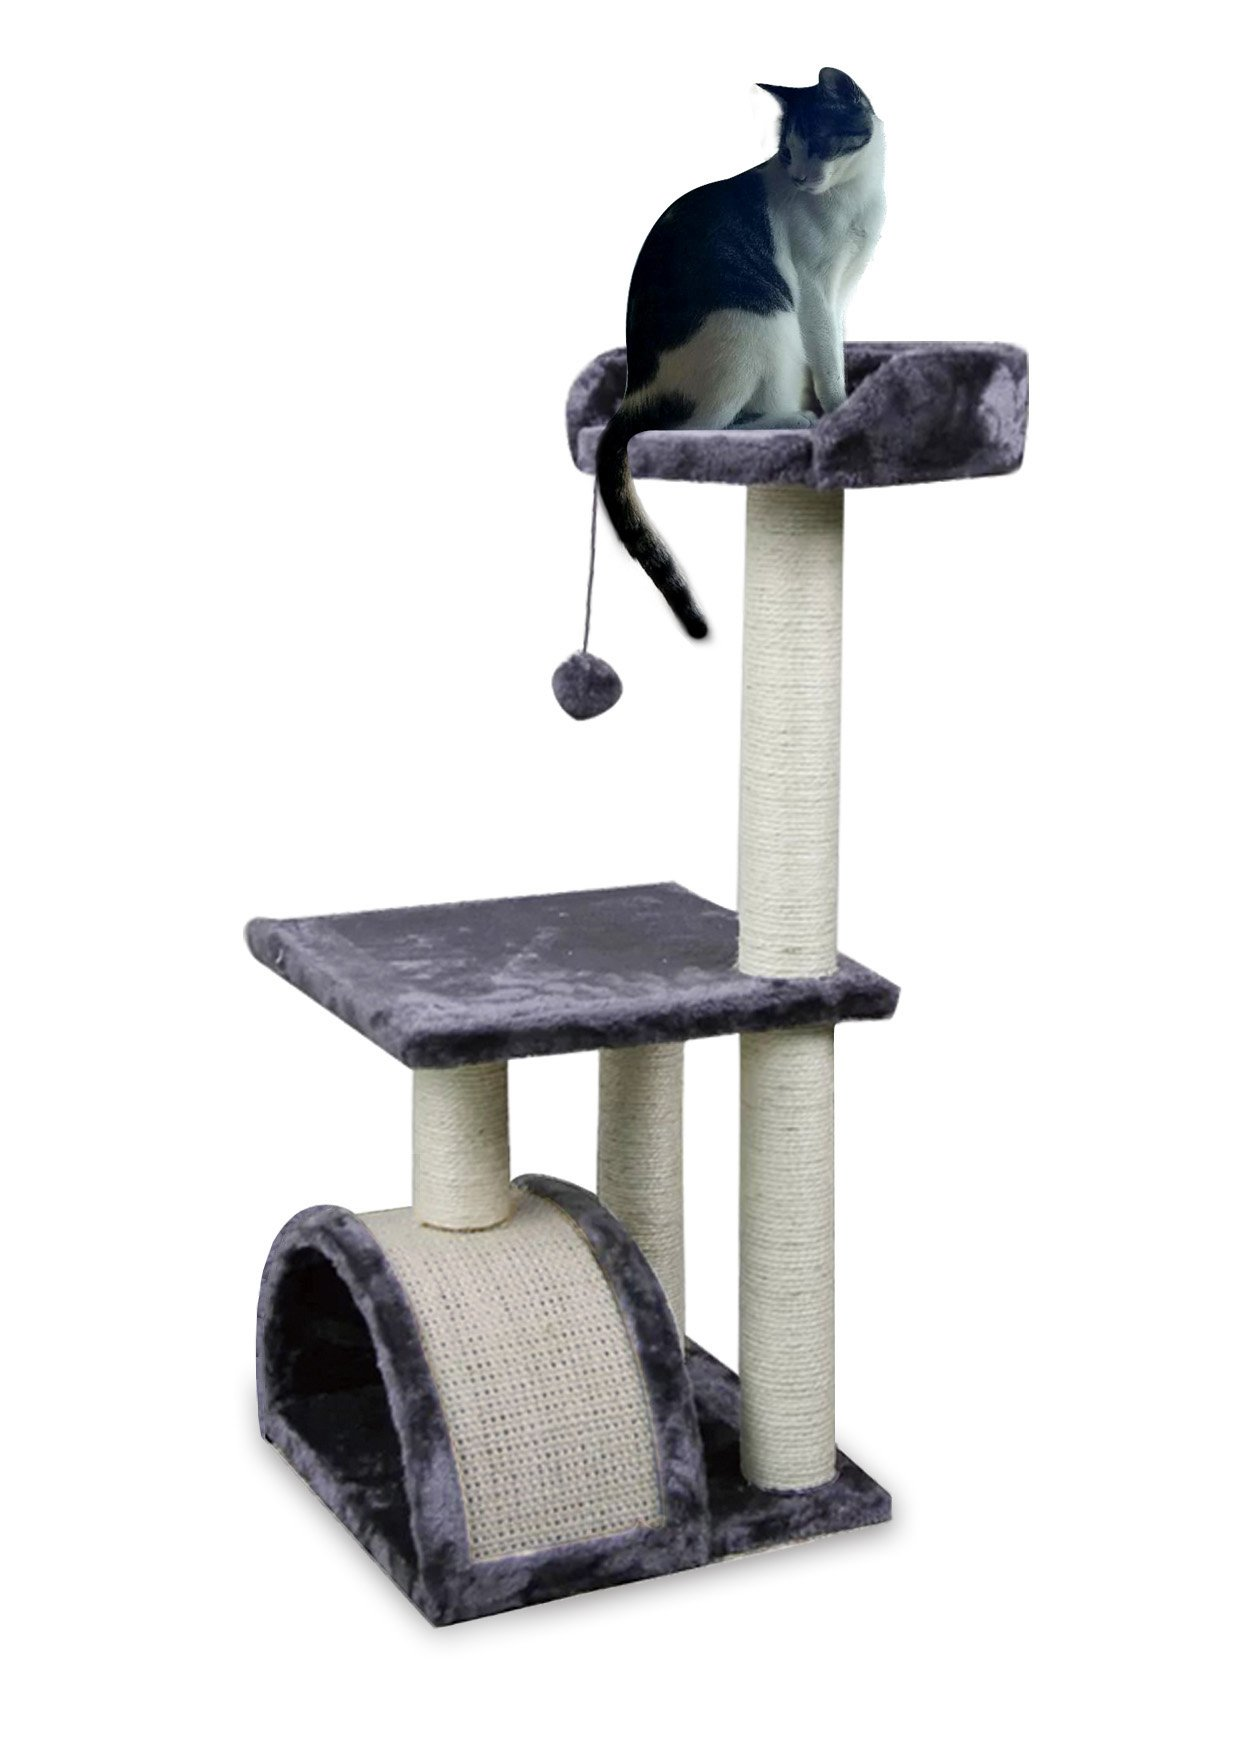 Roypet 32'' Cat Tree with Scratching Pad and Perch, grey